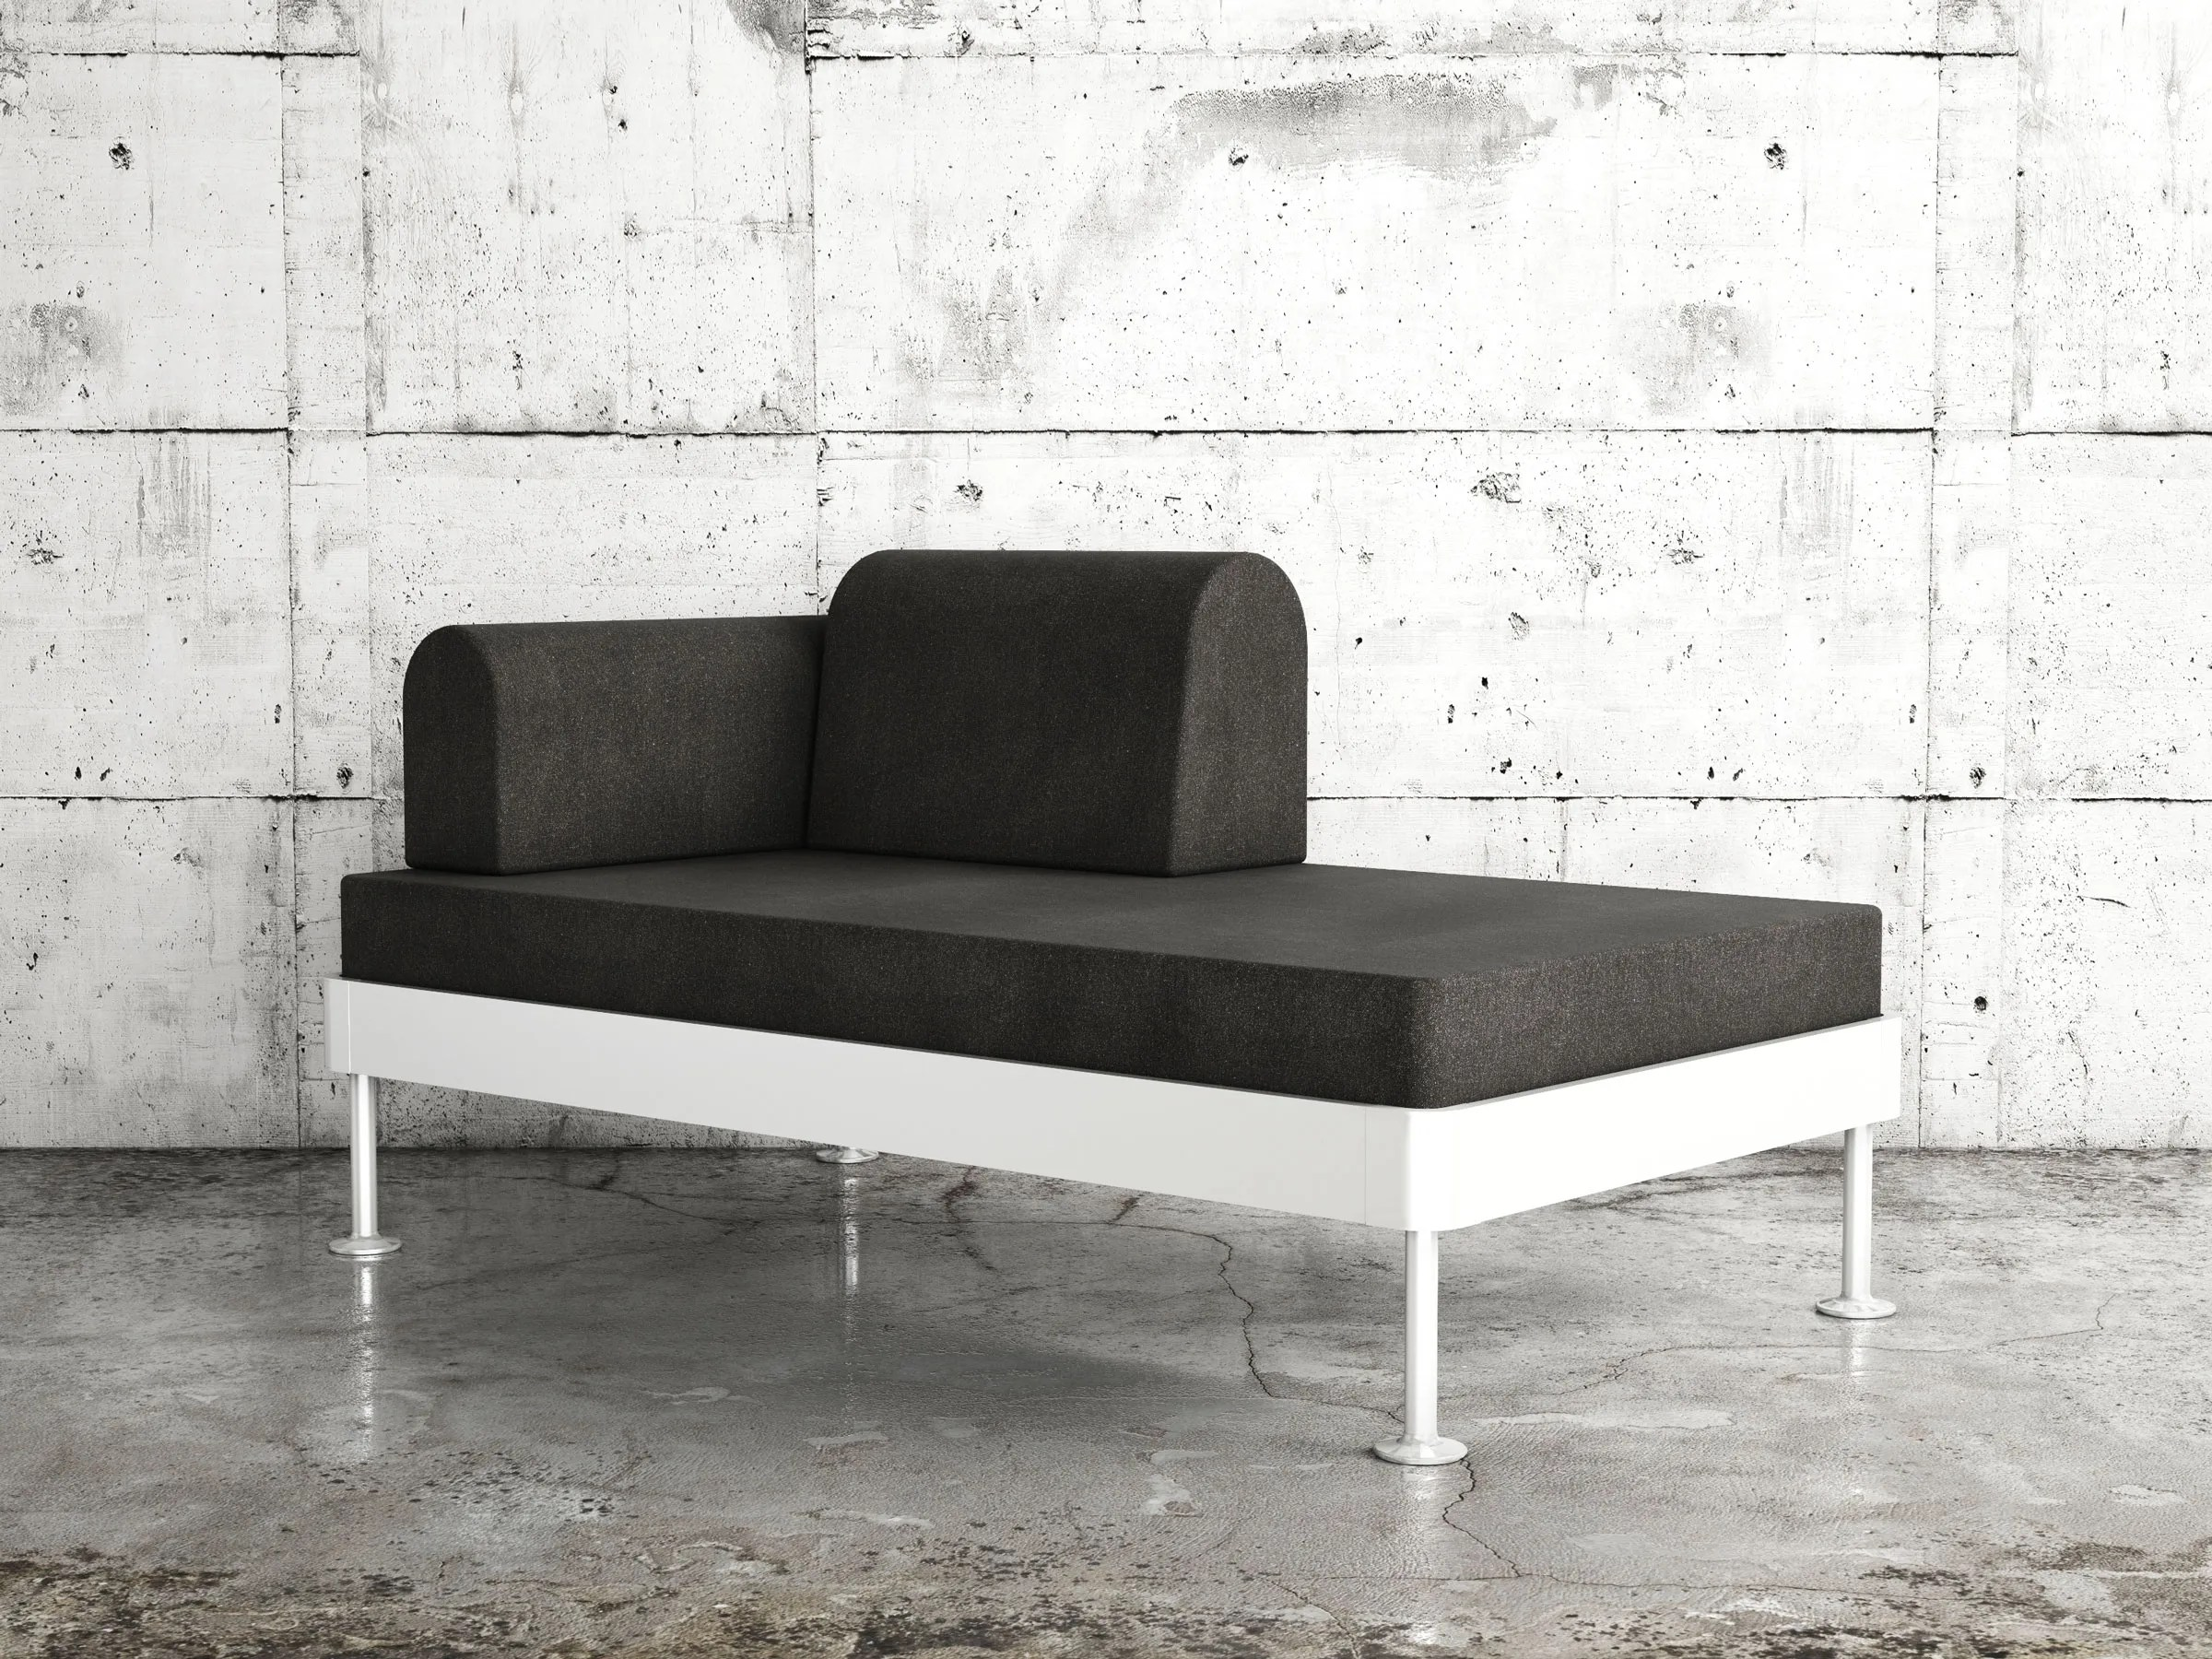 Bettsofa Diy Ikea S Delaktig Bed Is The Future Of Ikea Hacking Says Ikea Wired